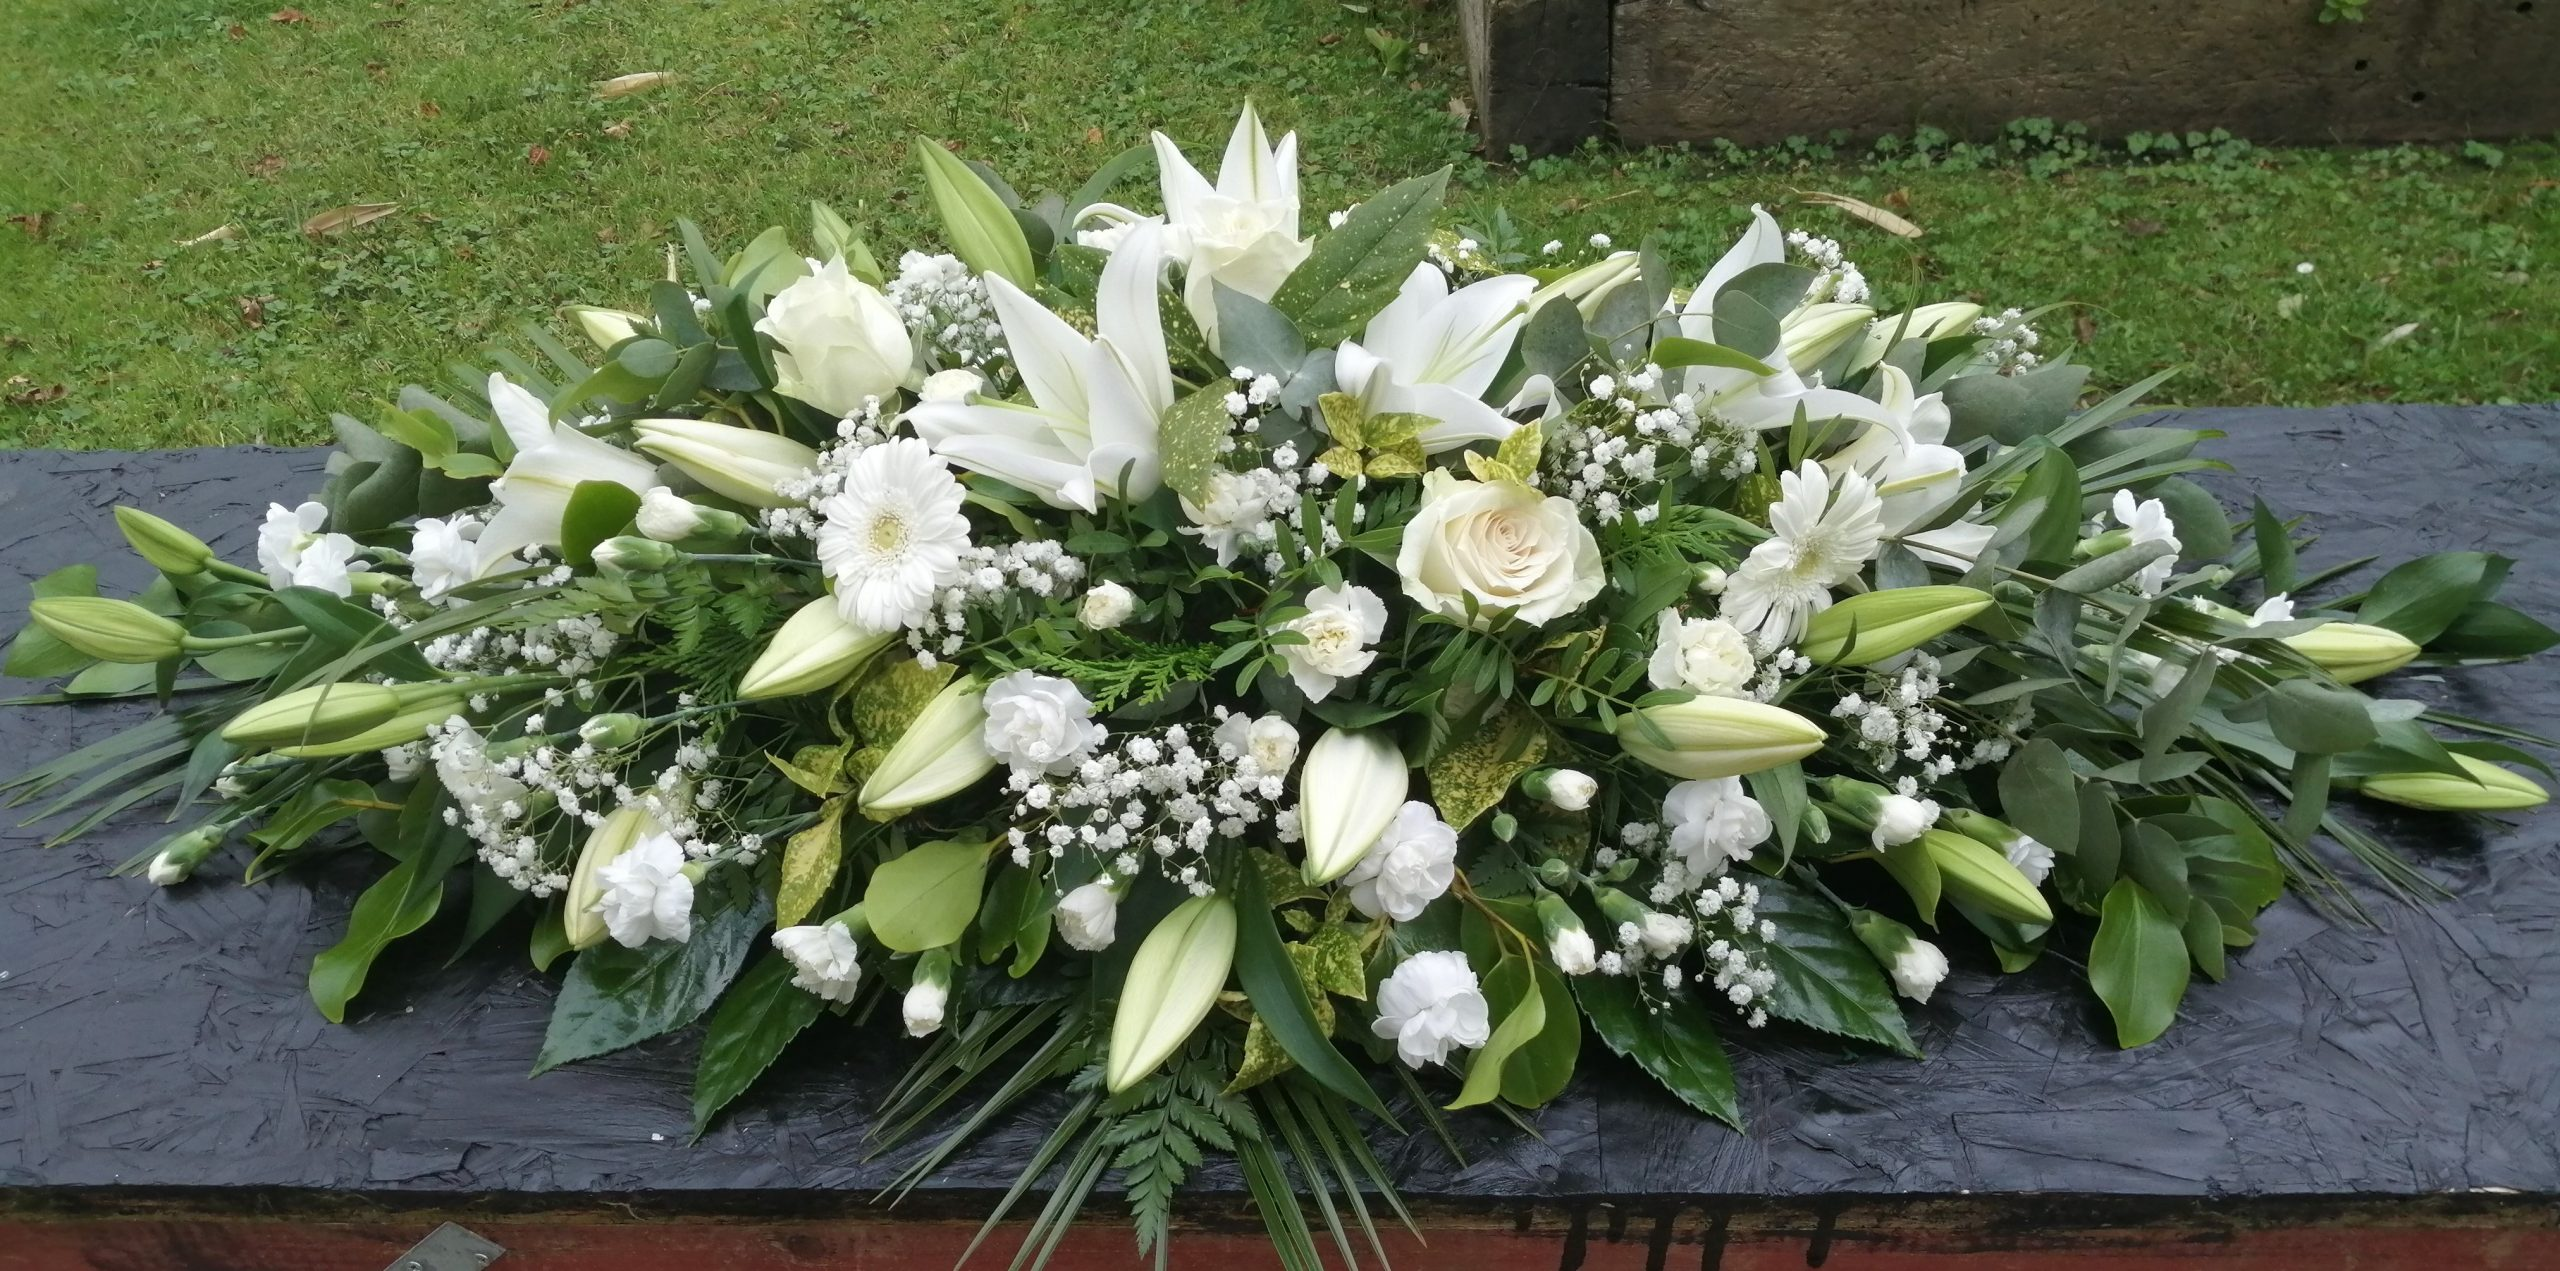 Non lily funeral spray white